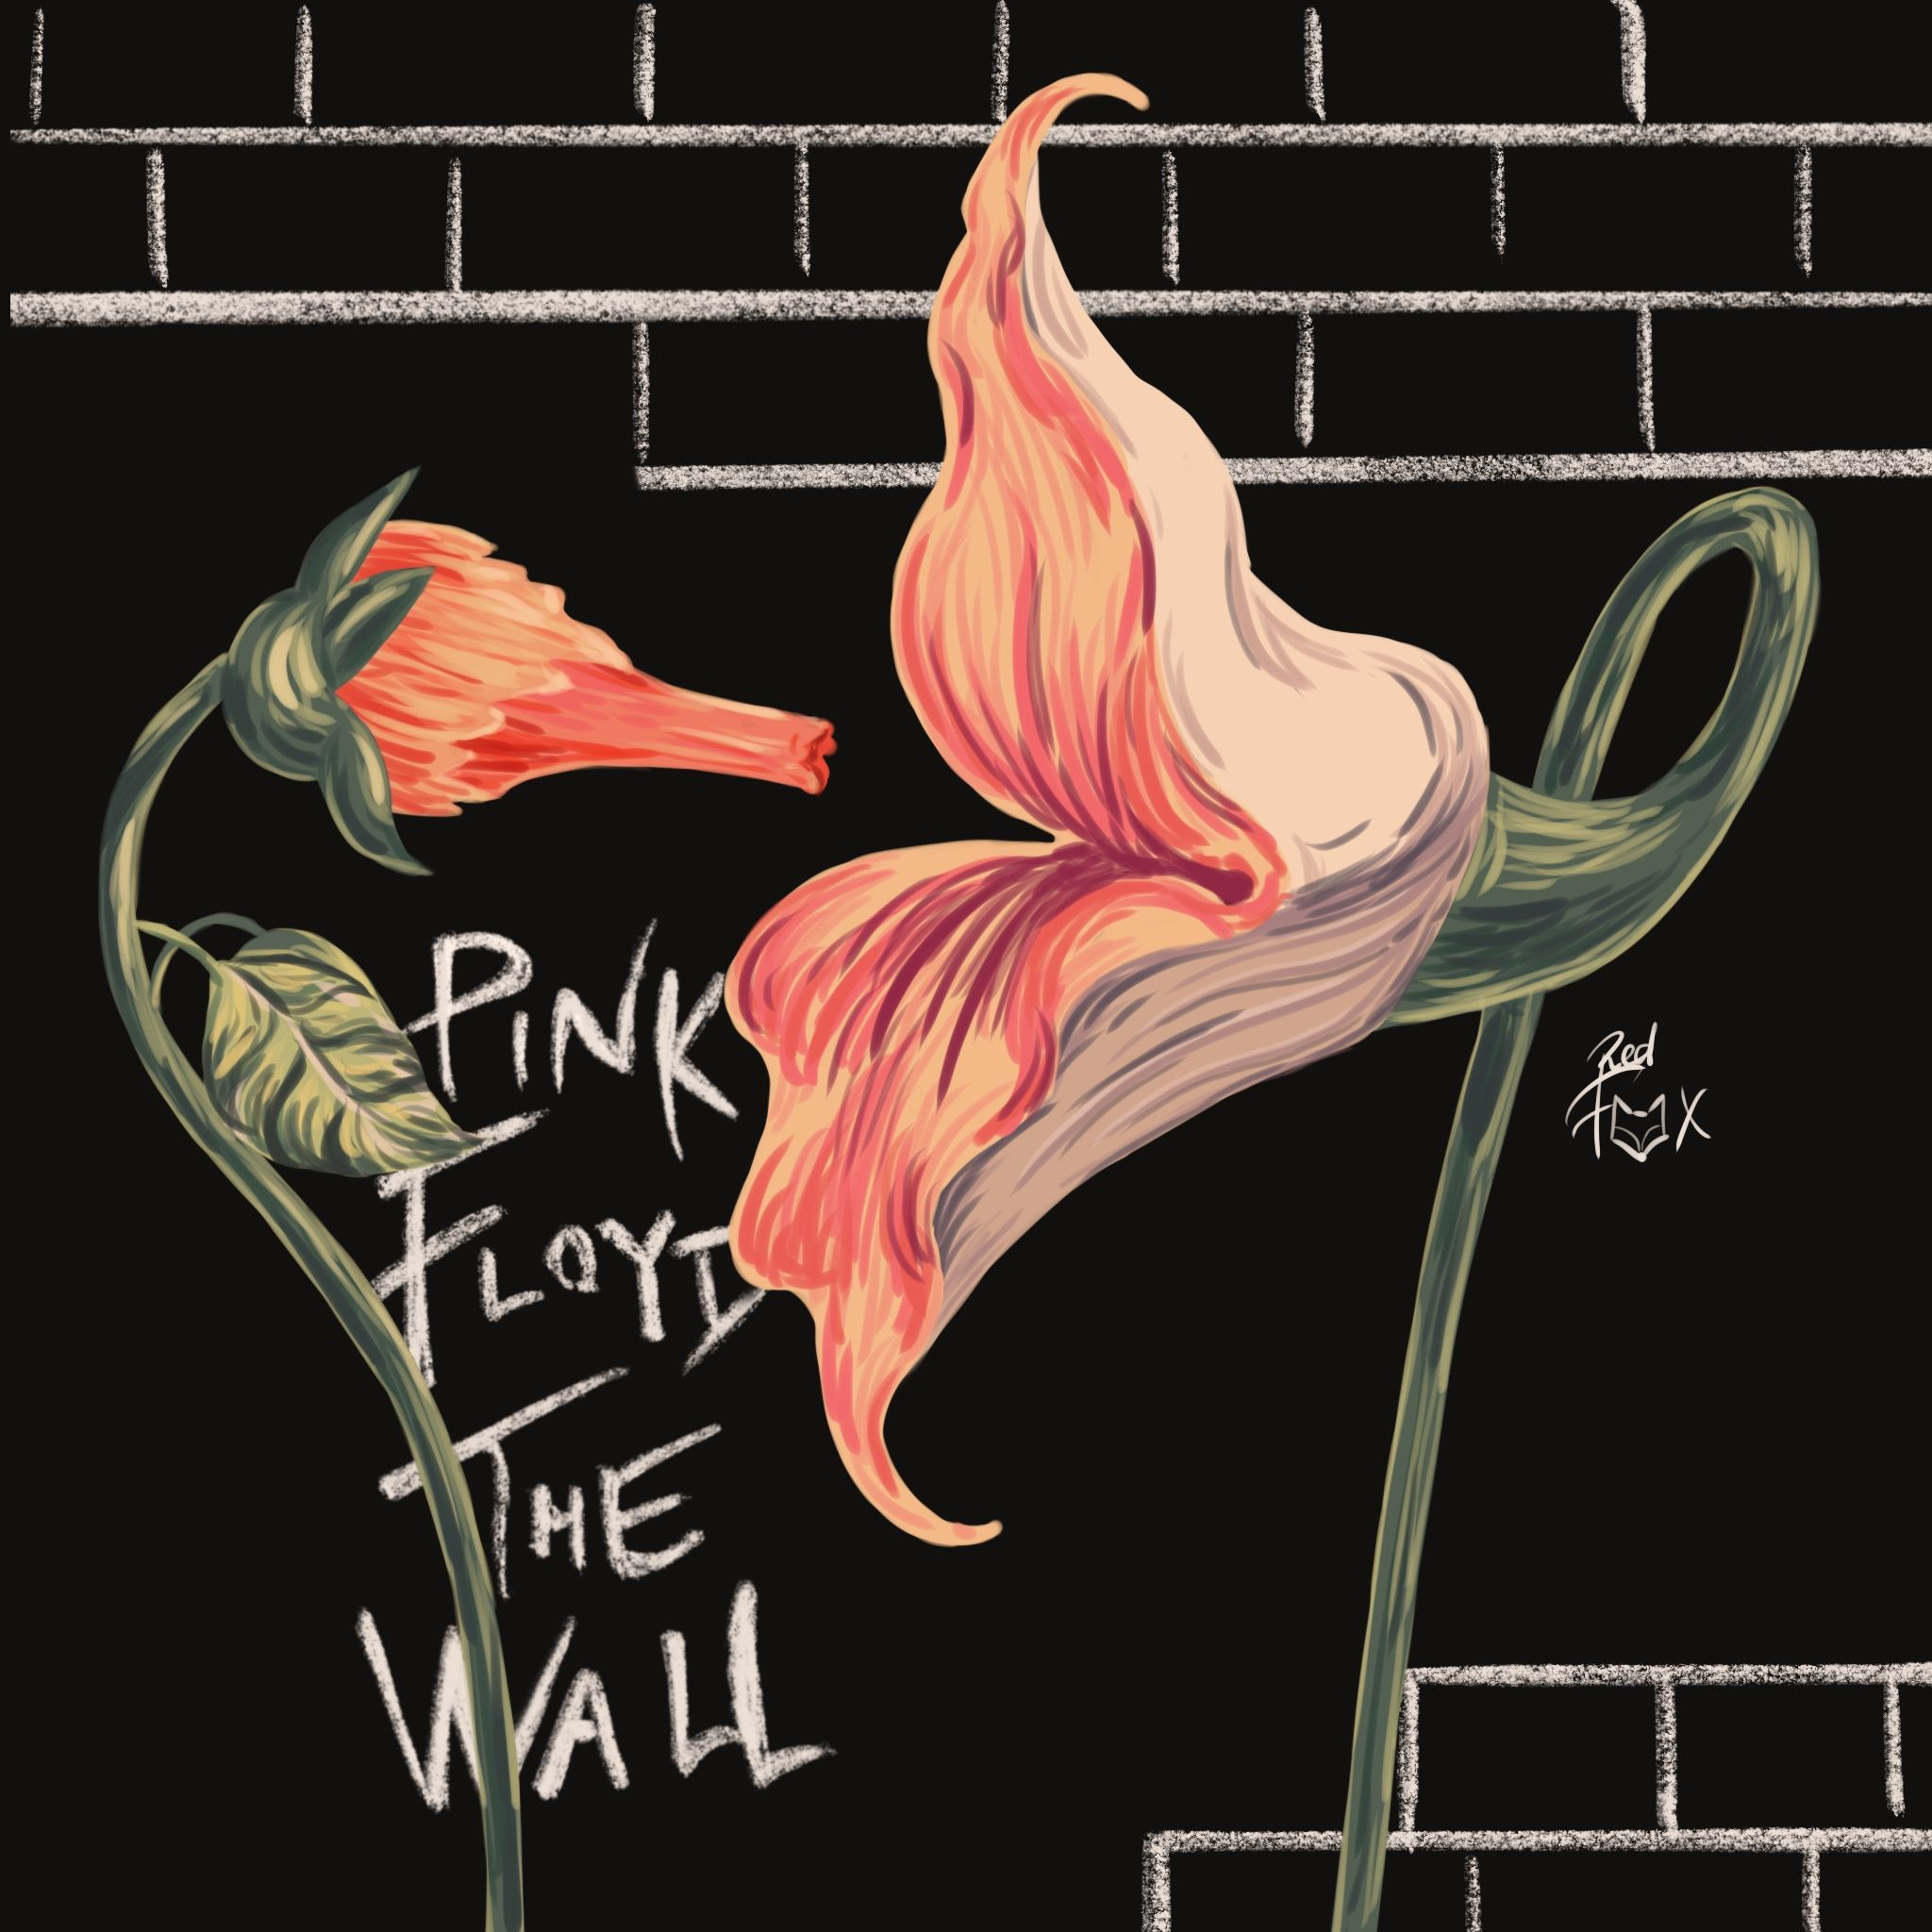 pink floyd flowers empty spaces the wall art pinterest pink floyd flowers empty spaces the wall mightylinksfo